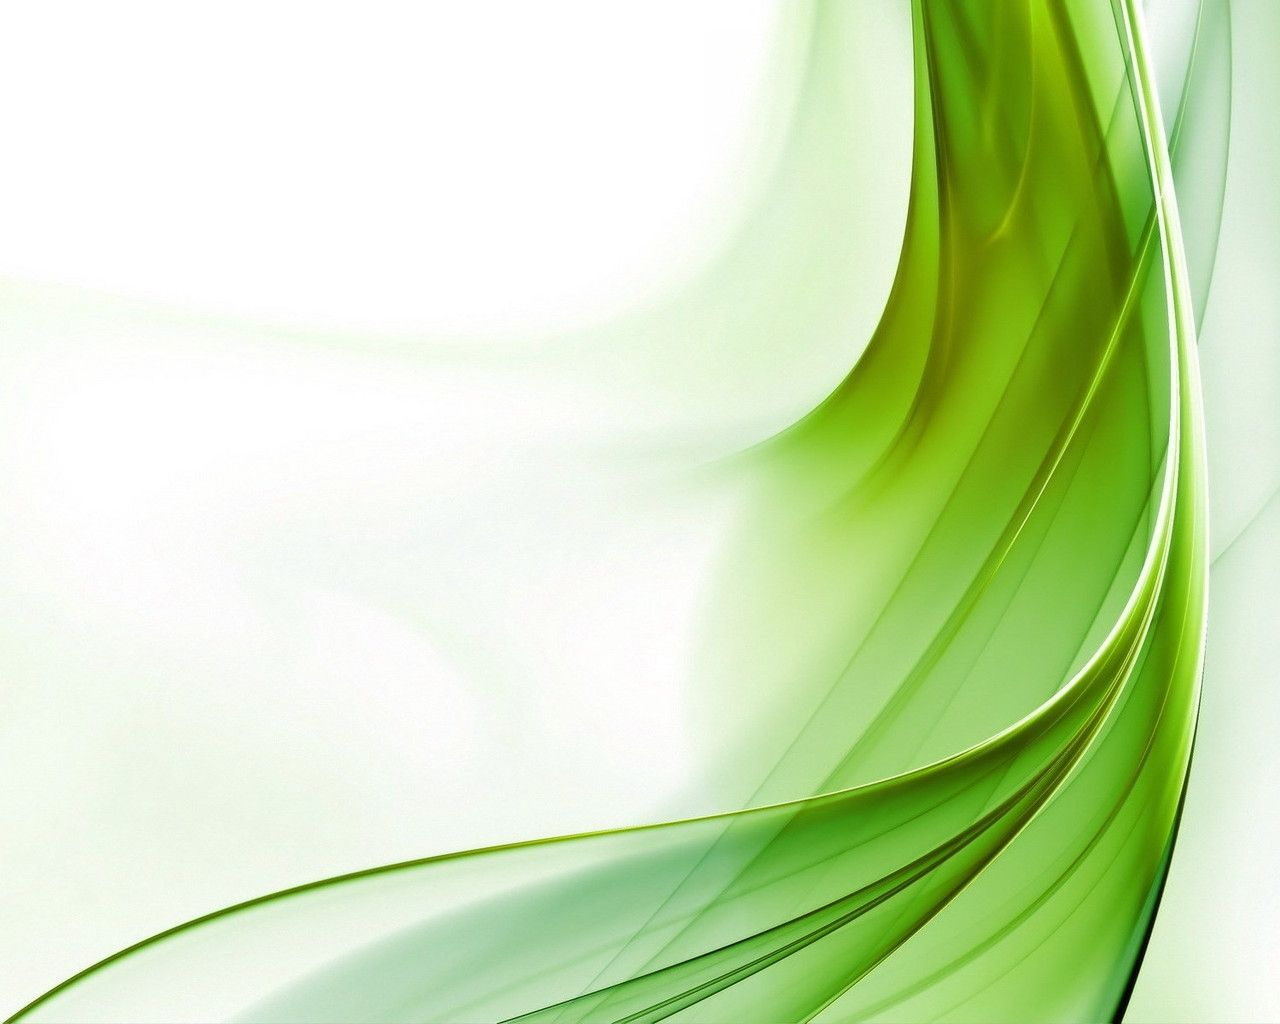 White And Green Abstract Wallpapers High Quality Resolution On Wallpaper 1080p Hd Background Design Green Backgrounds Abstract Backgrounds